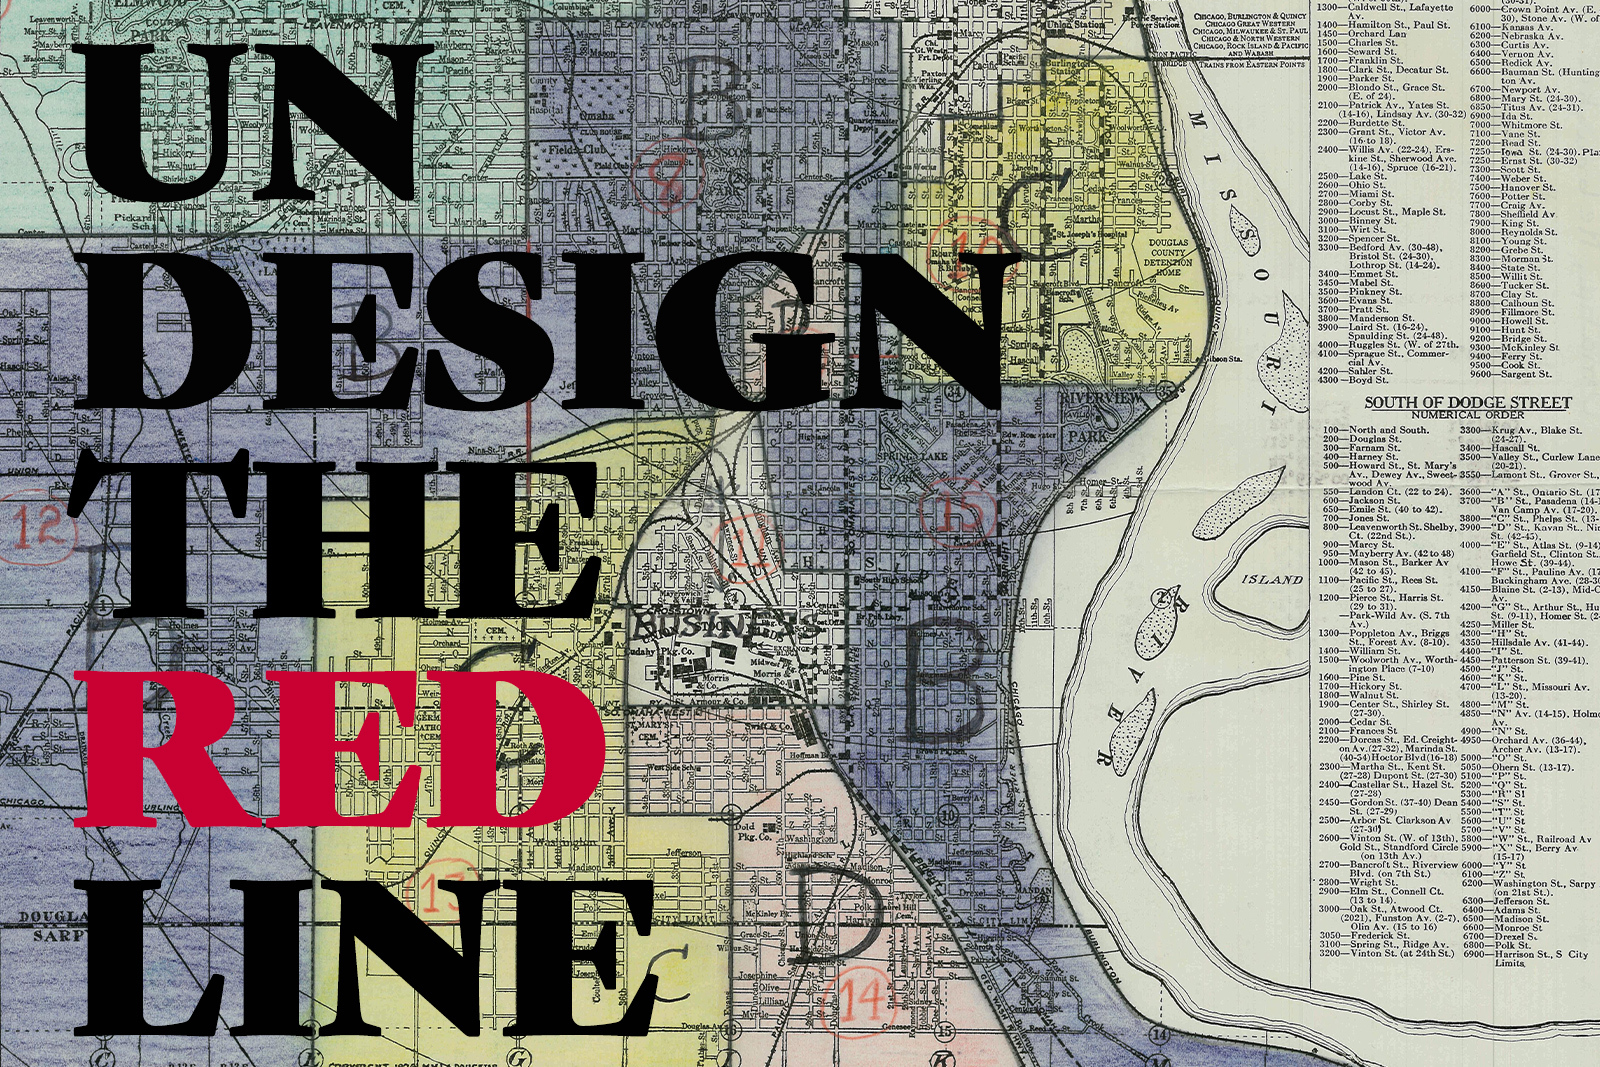 """Omaha's 1930s Redlining map with the work """"Undesign the Redline"""" overlaid on top."""